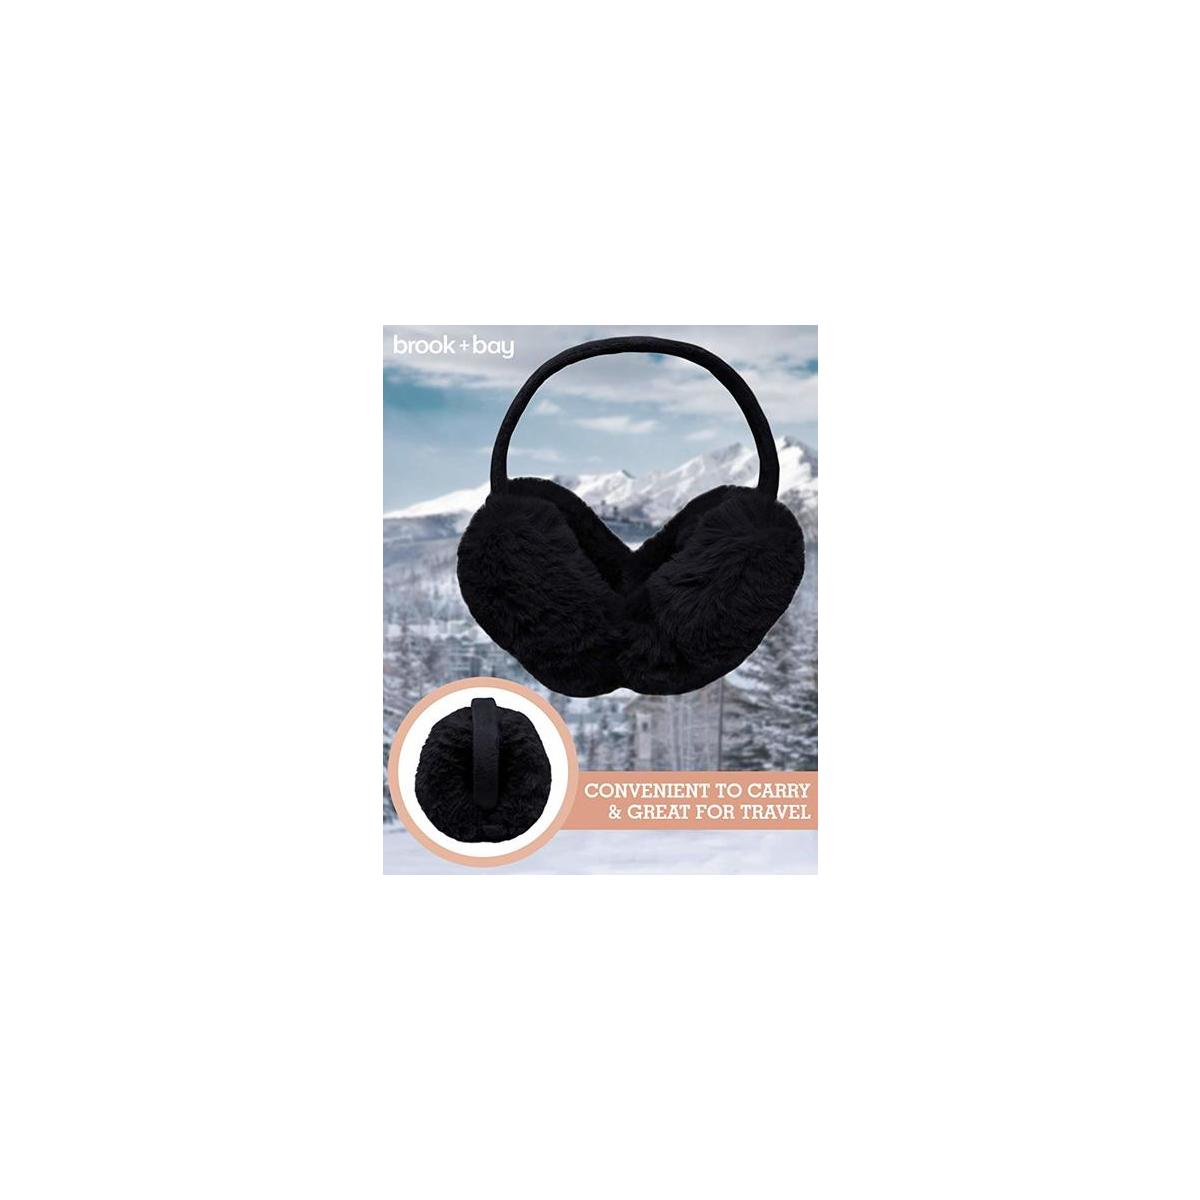 Womens Ear Muffs - Winter Ear Warmers/Covers - Cable Knit Furry Fleece Earmuffs for Cold Weather [promo applicable to BLACK FUR VARIANT ONLY]]